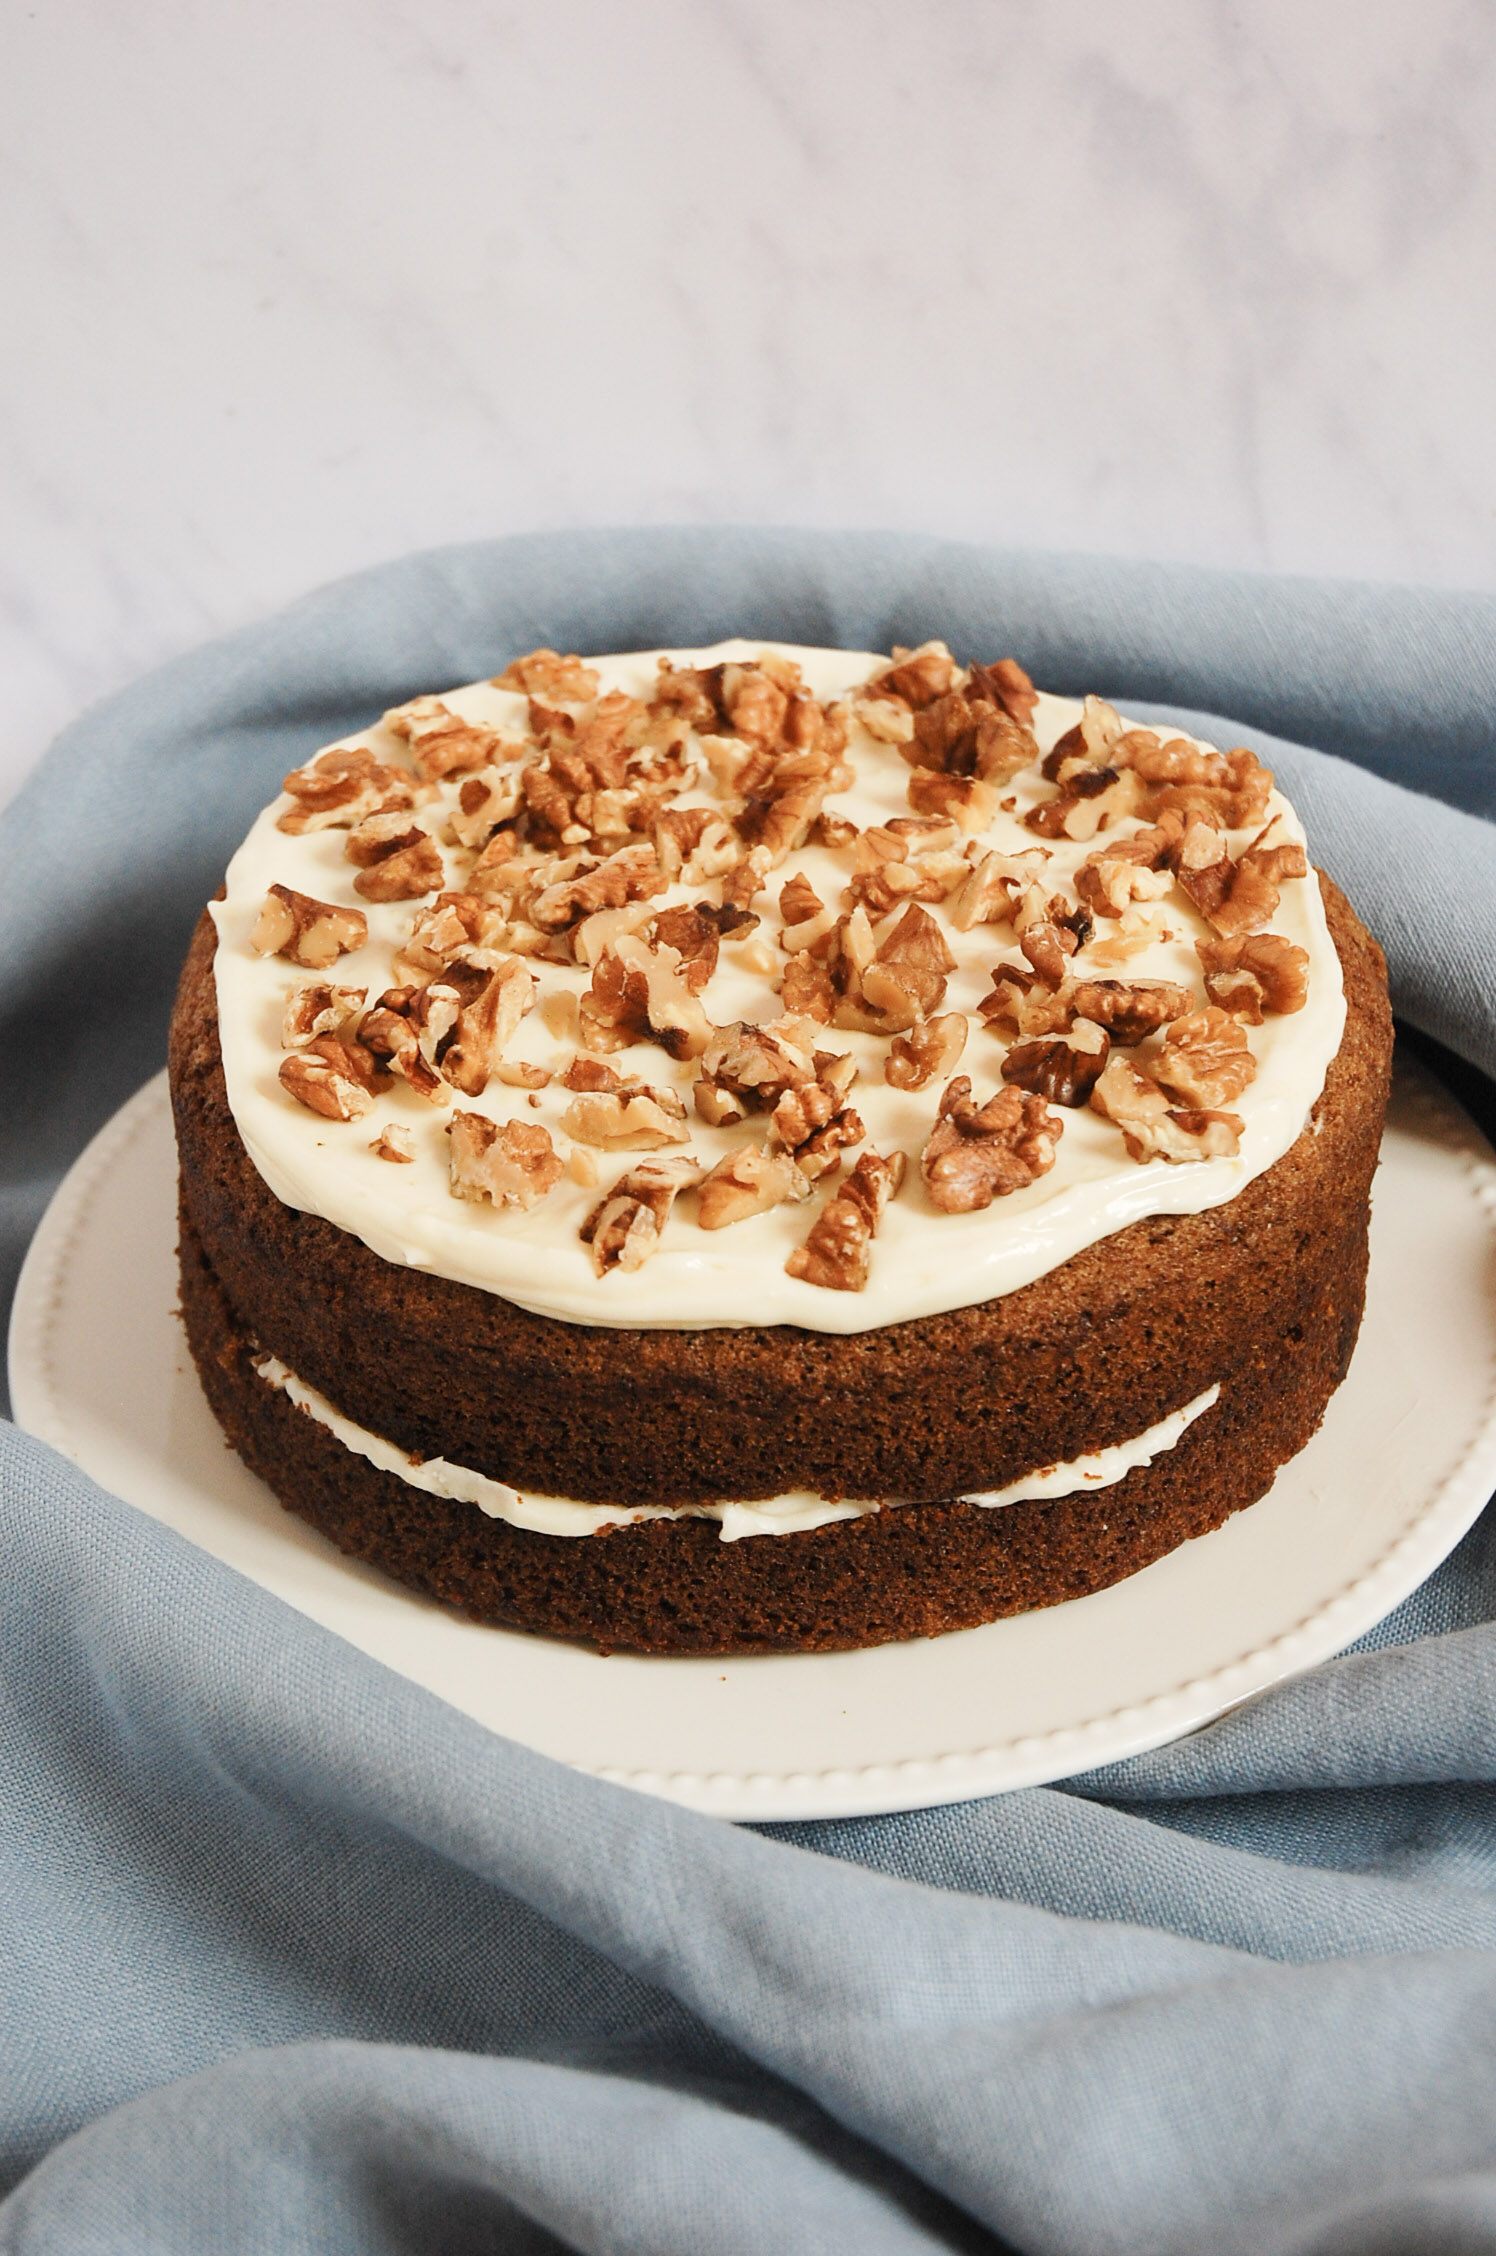 Easy Carrot and Walnut Cake